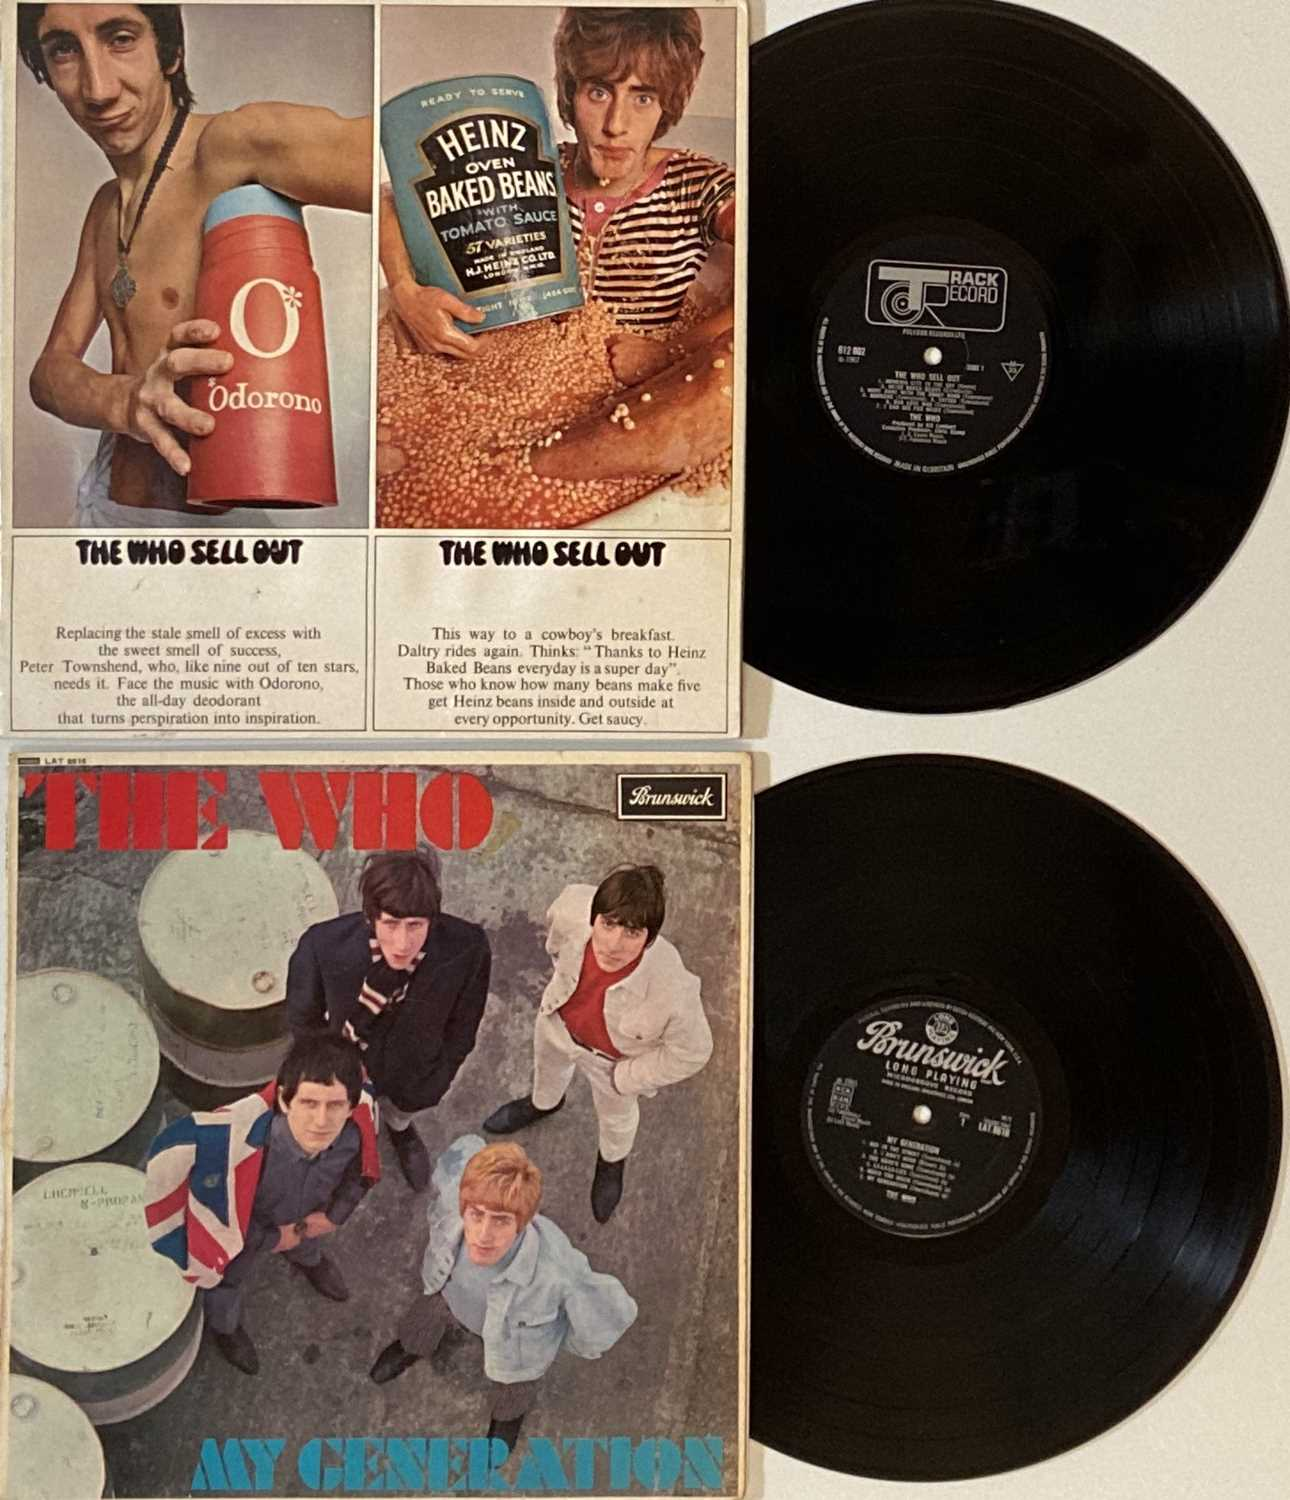 60s MOD/BEAT - LPs - Image 4 of 5